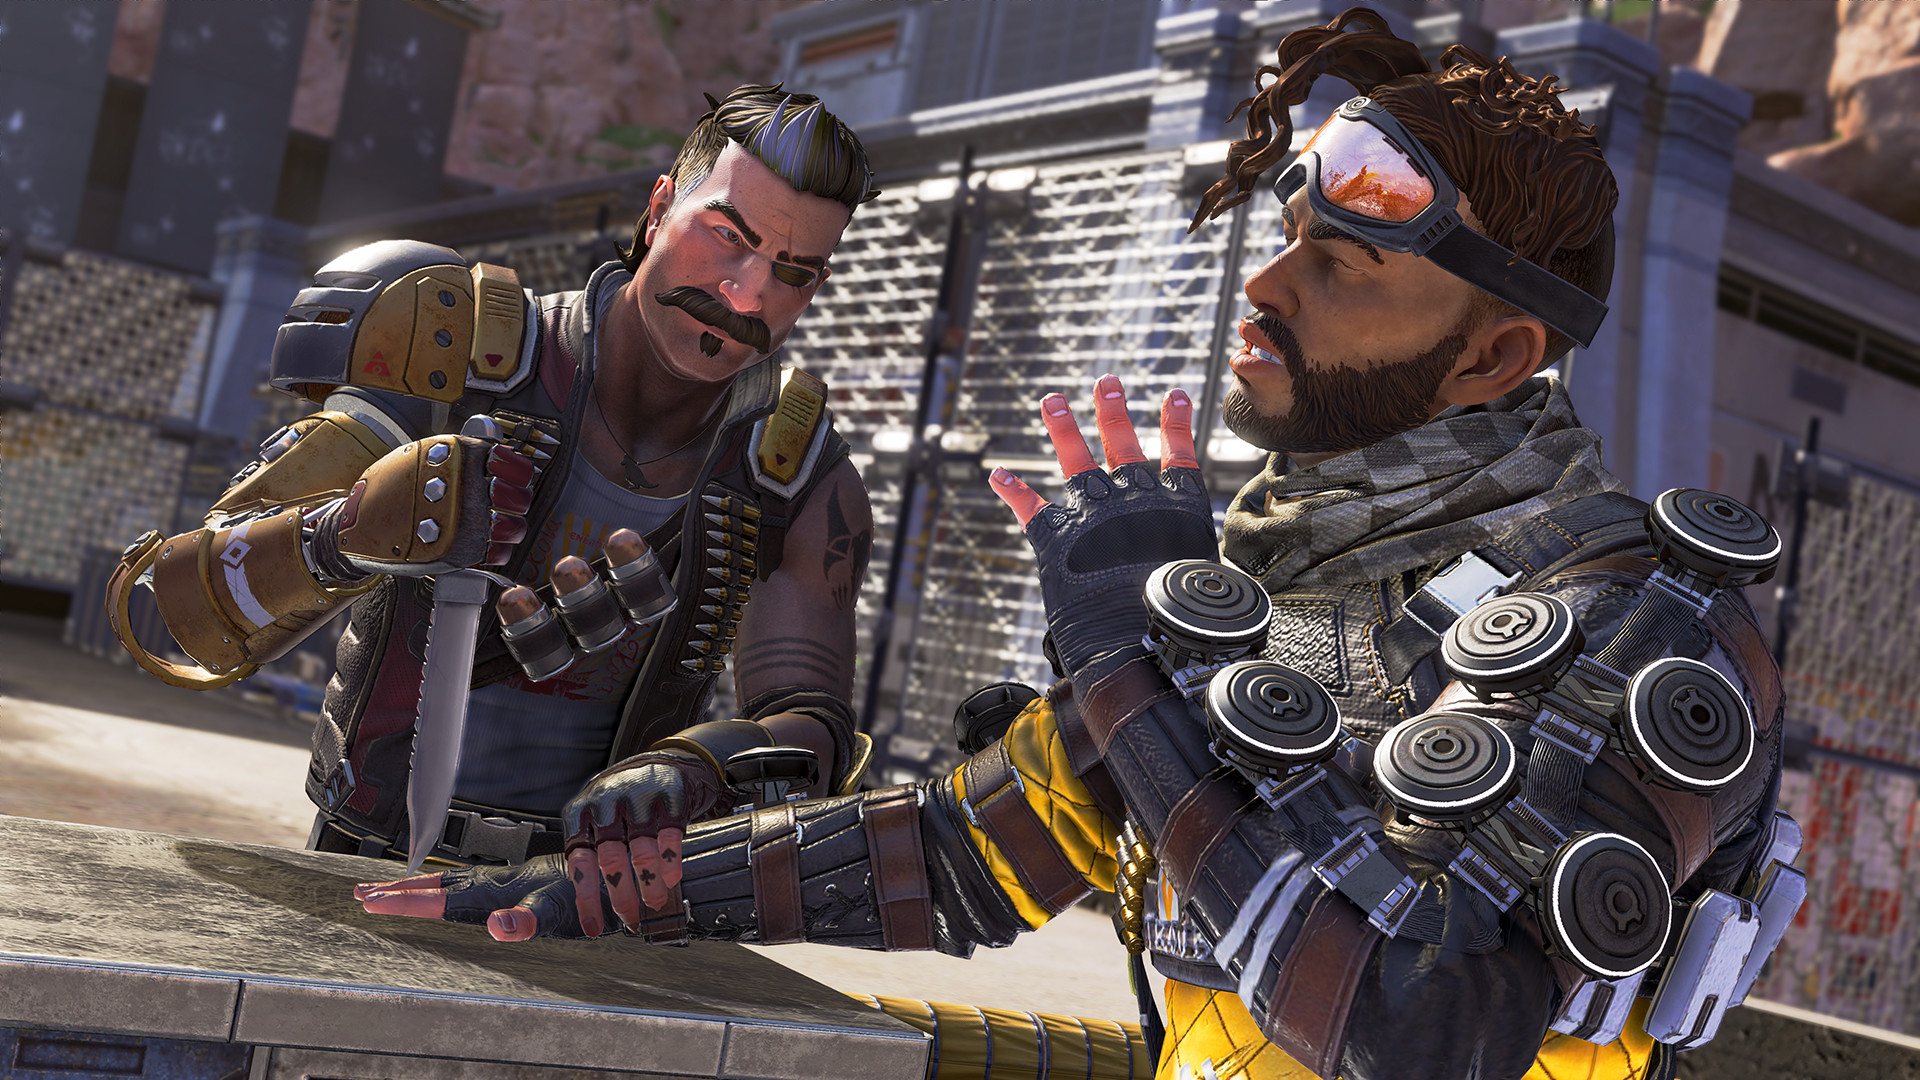 Apex Legends kicks off Season 8 with a new player record on Steam